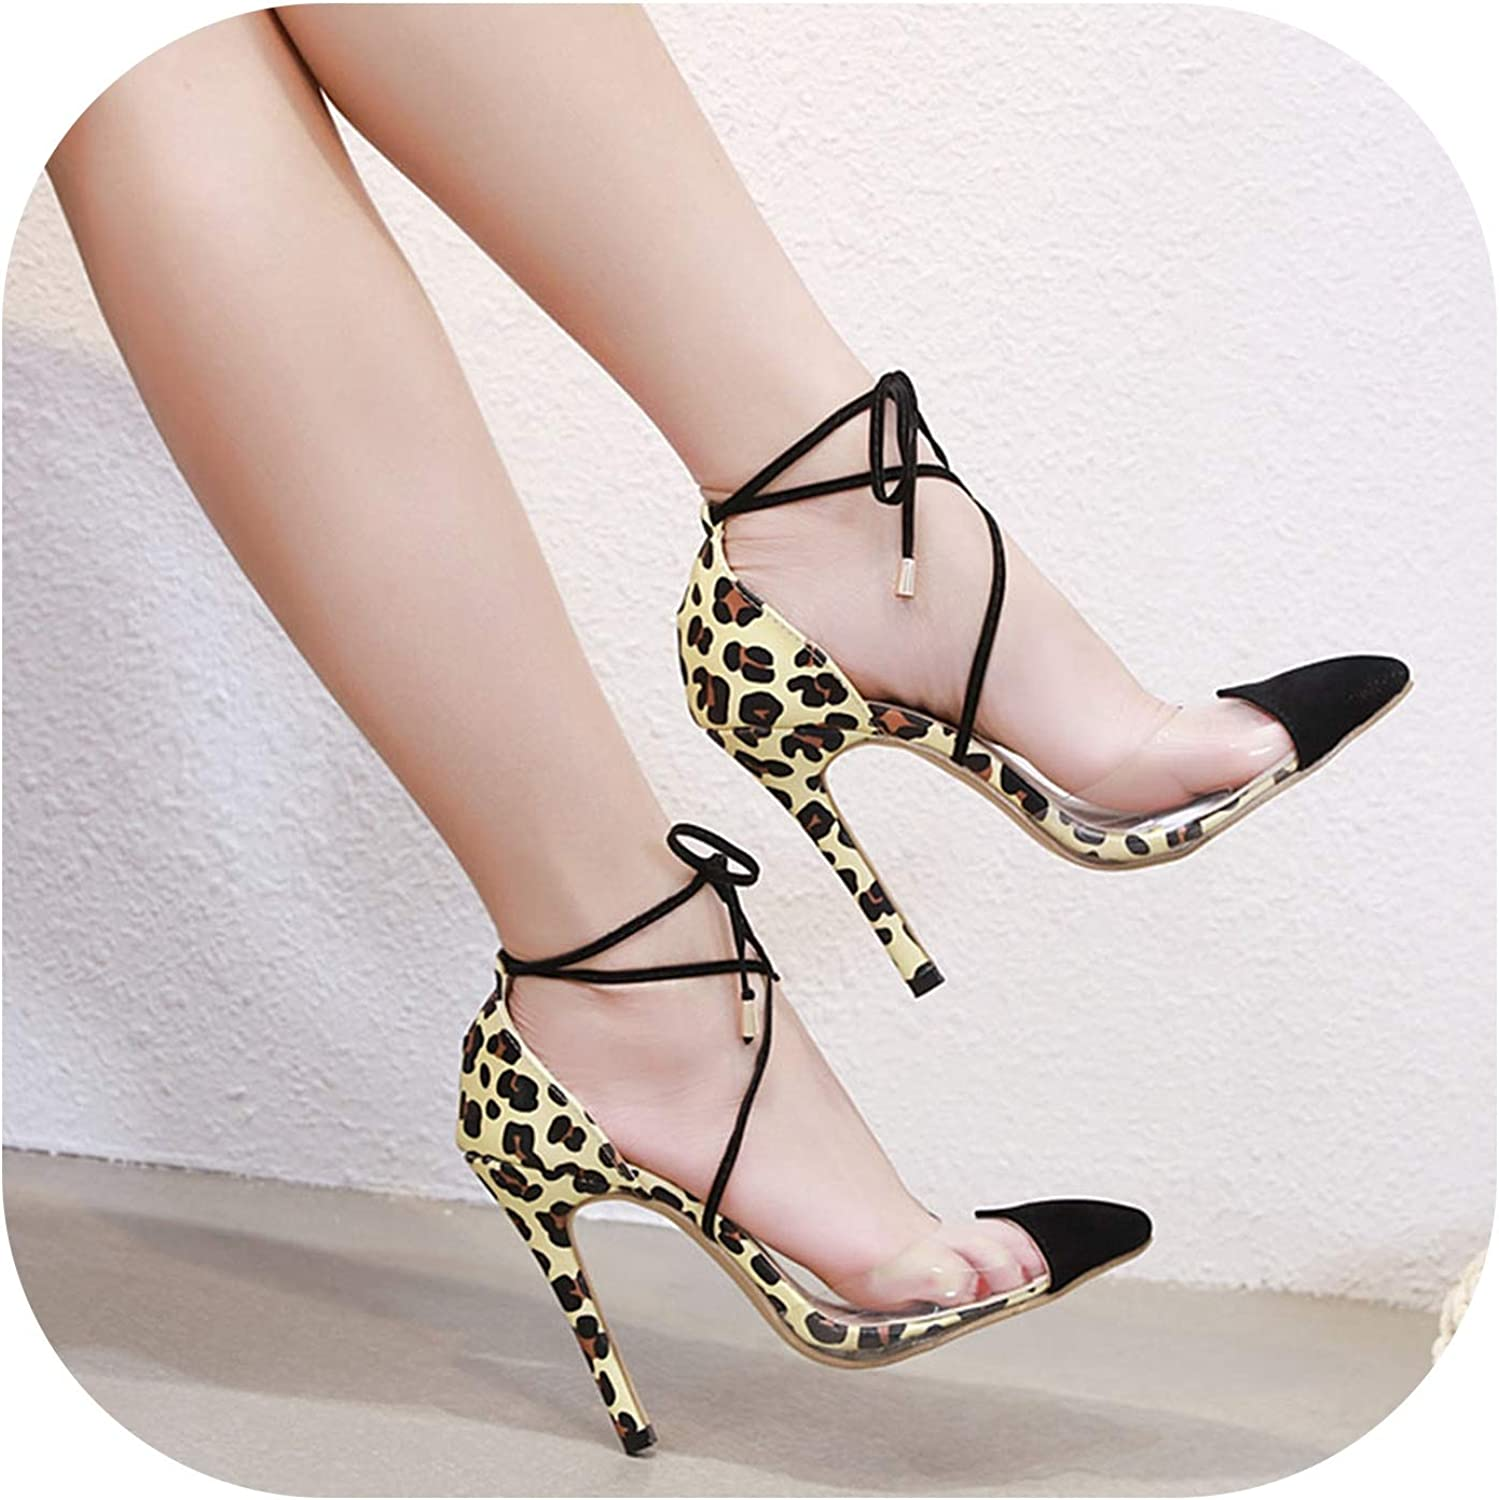 Lace-Up Sandals Pointed High Heels Sexy Women Transparent Thin Heel Sandals